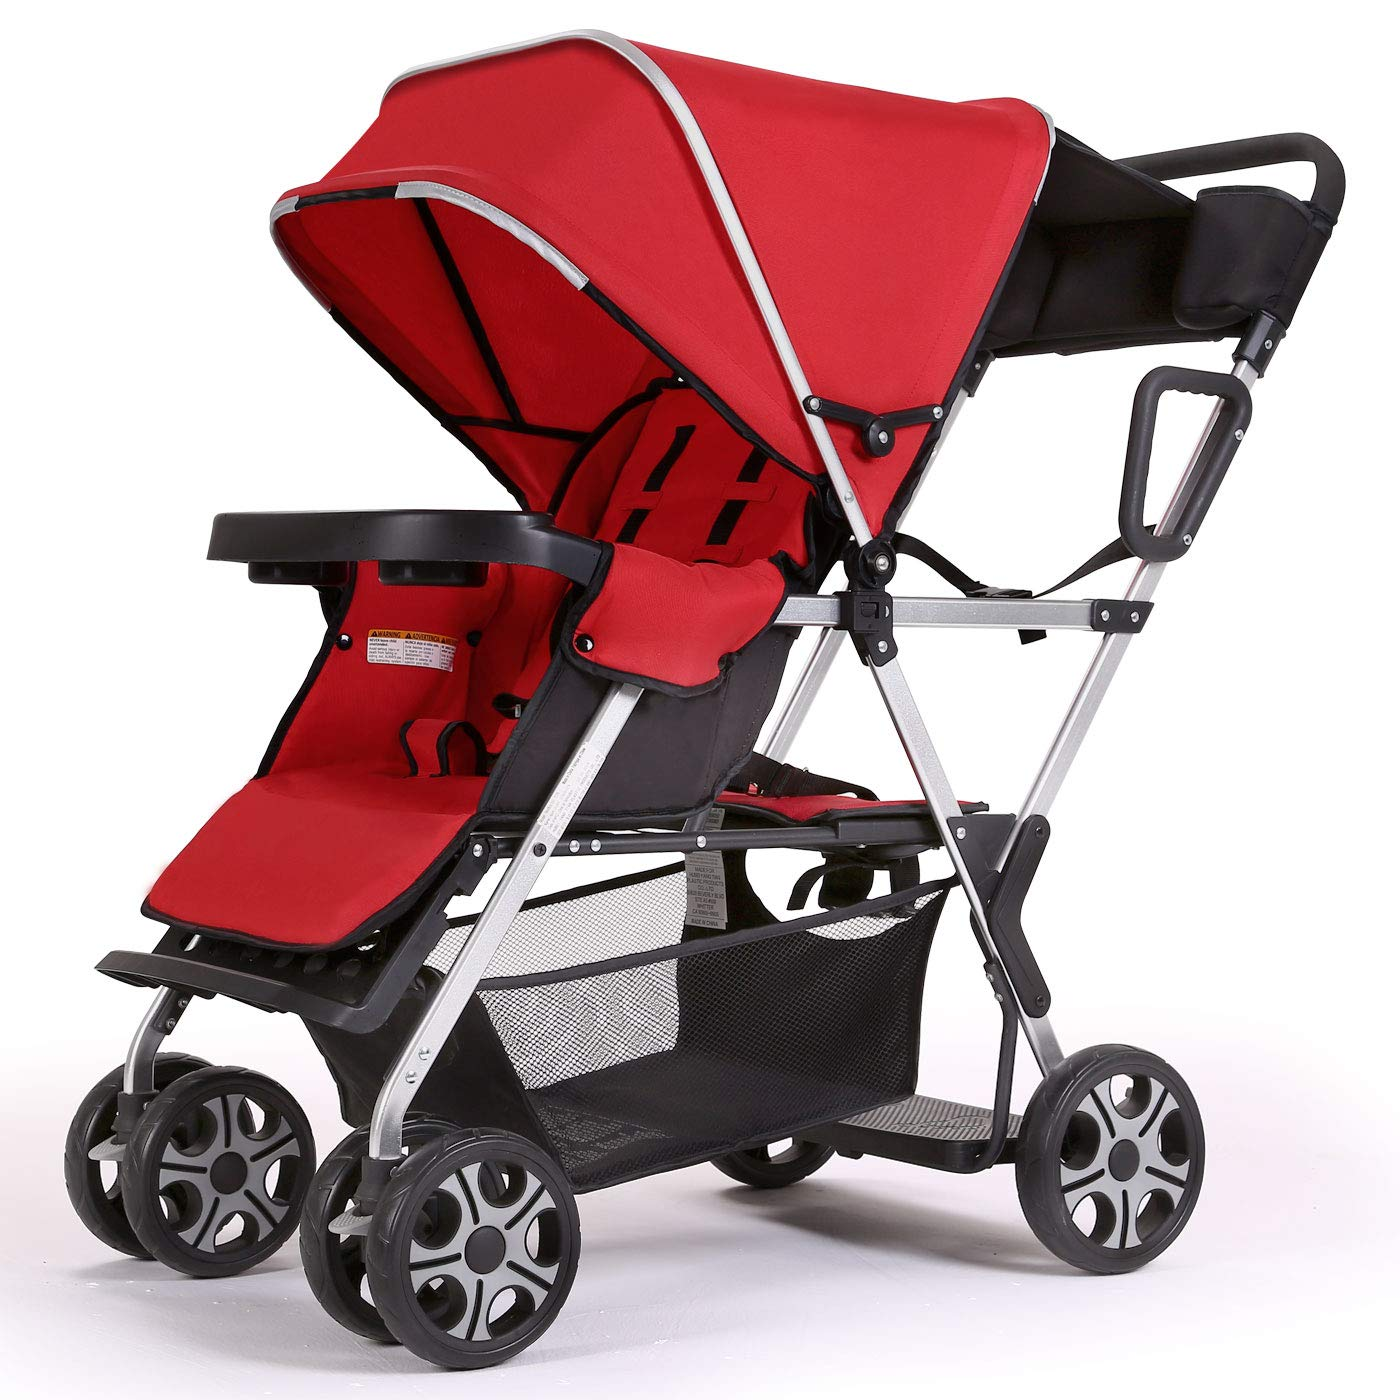 Double Stroller Convenience Urban Twin Carriage Stroller - Cynebaby Tandem Collapsible Stroller All Terrain Double Pushchair for Toddler Girls and Boys Stable Stroller Frame with Bag Organizer by cynebaby